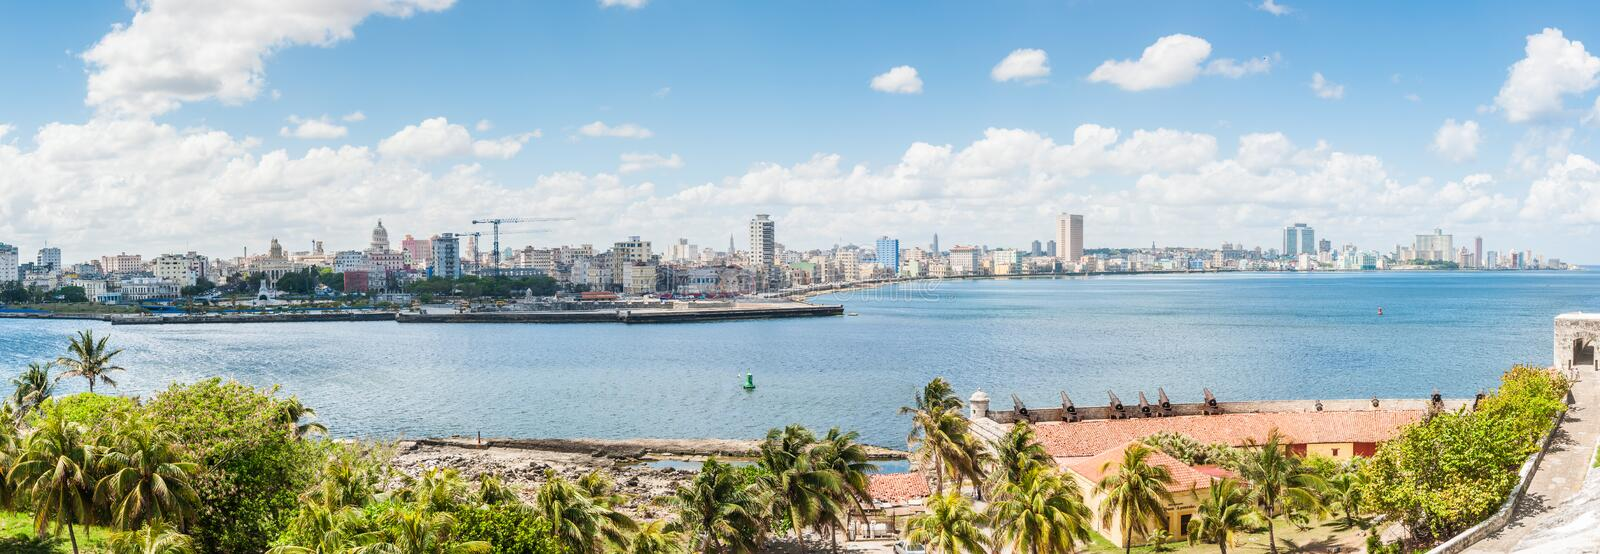 Panoramic view of the cityscape in Havana, Cuba stock photo